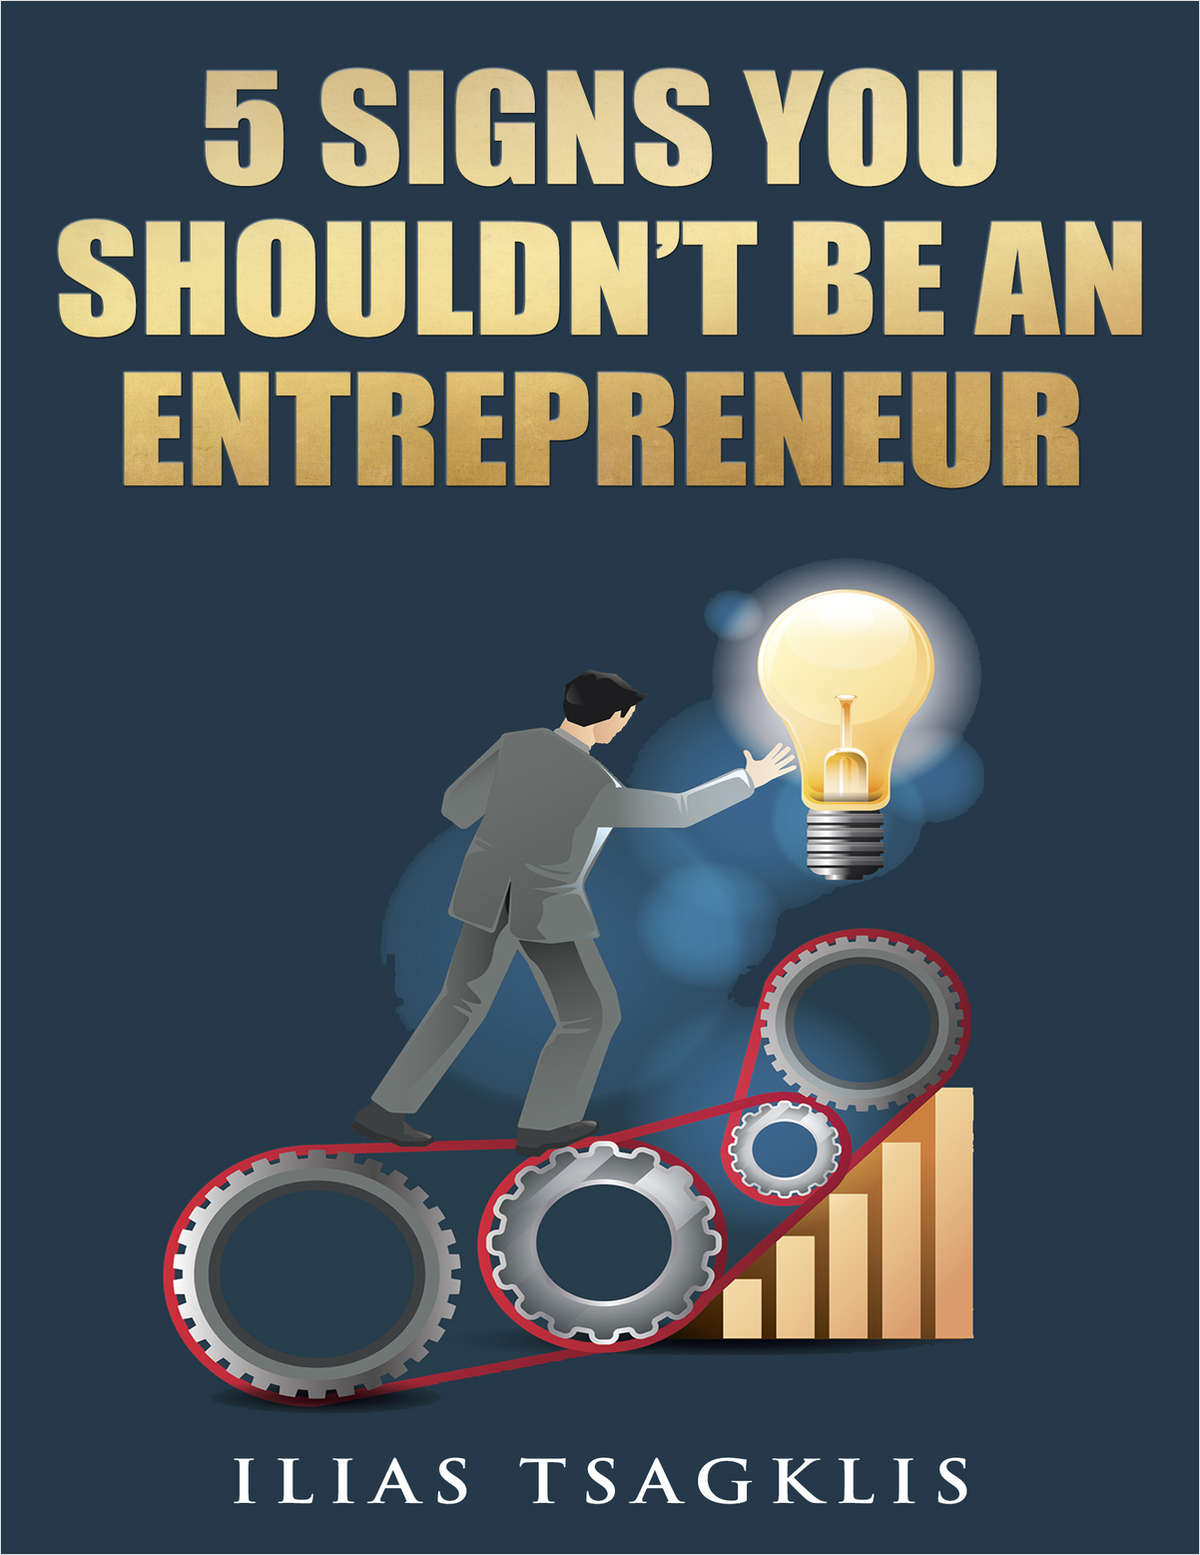 5 Signs You Shouldn't Be an Entrepreneur